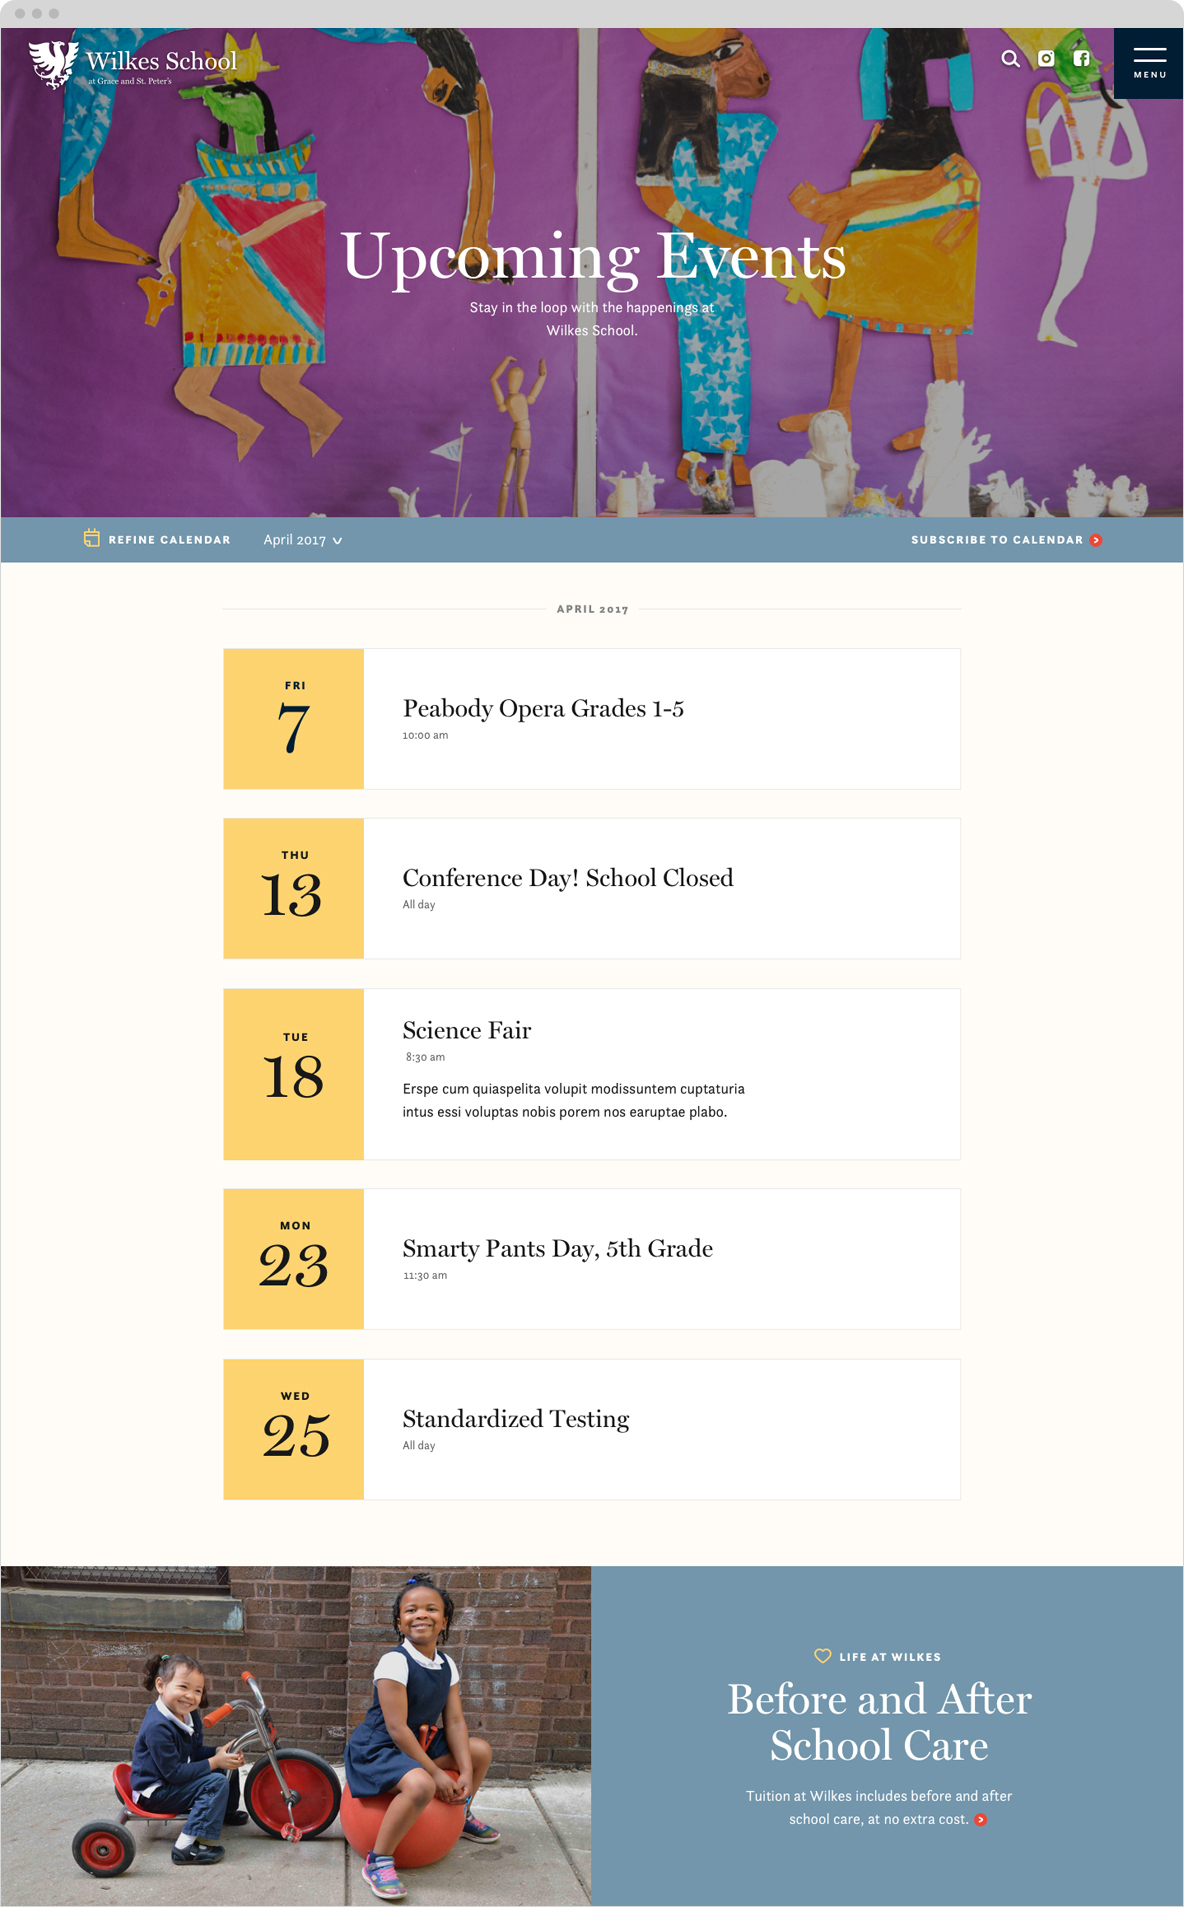 wilkes school website events page